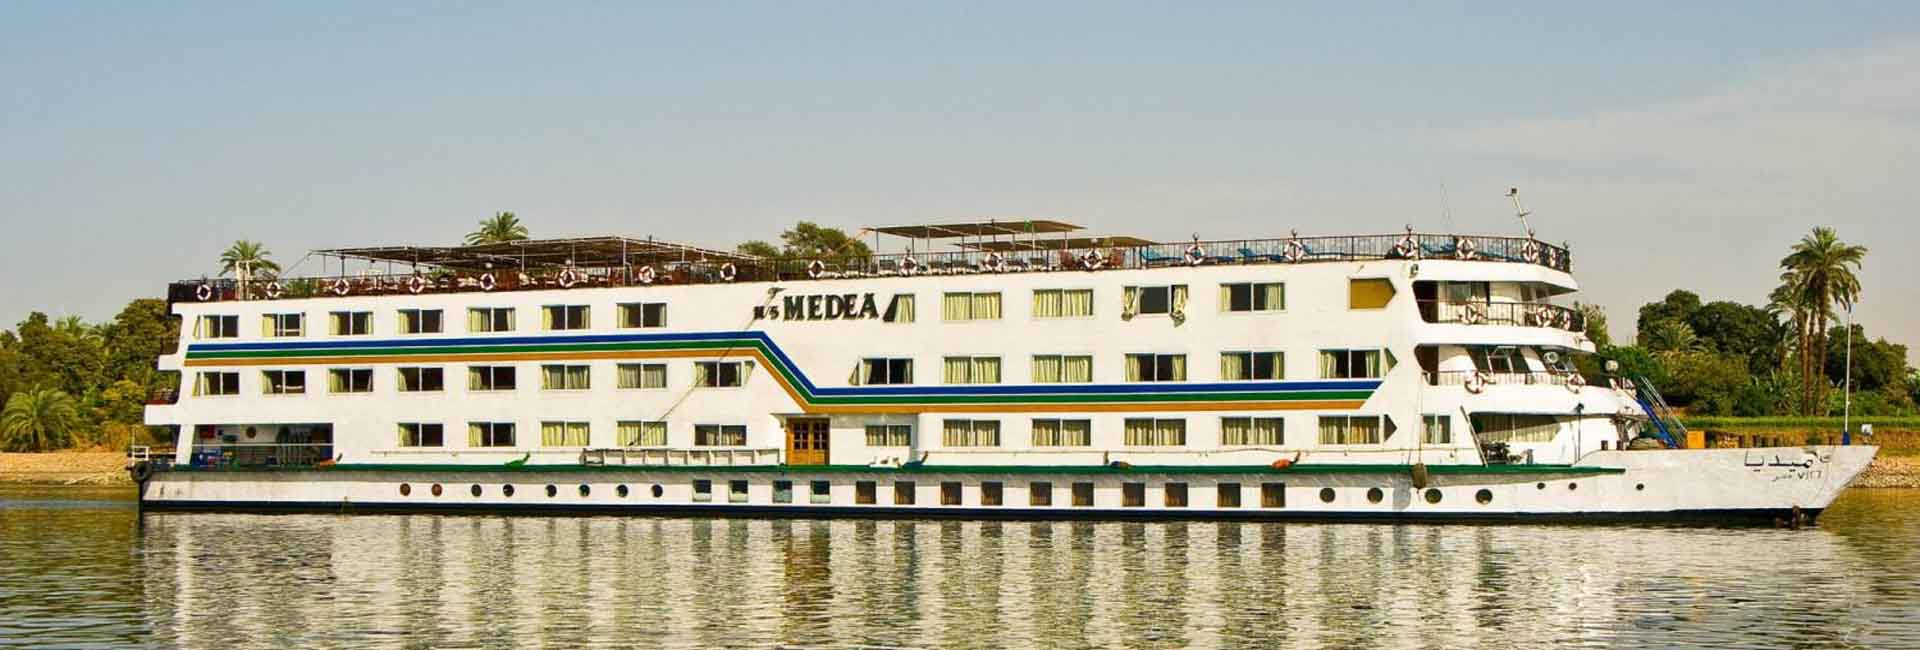 Medea Nile Cruise